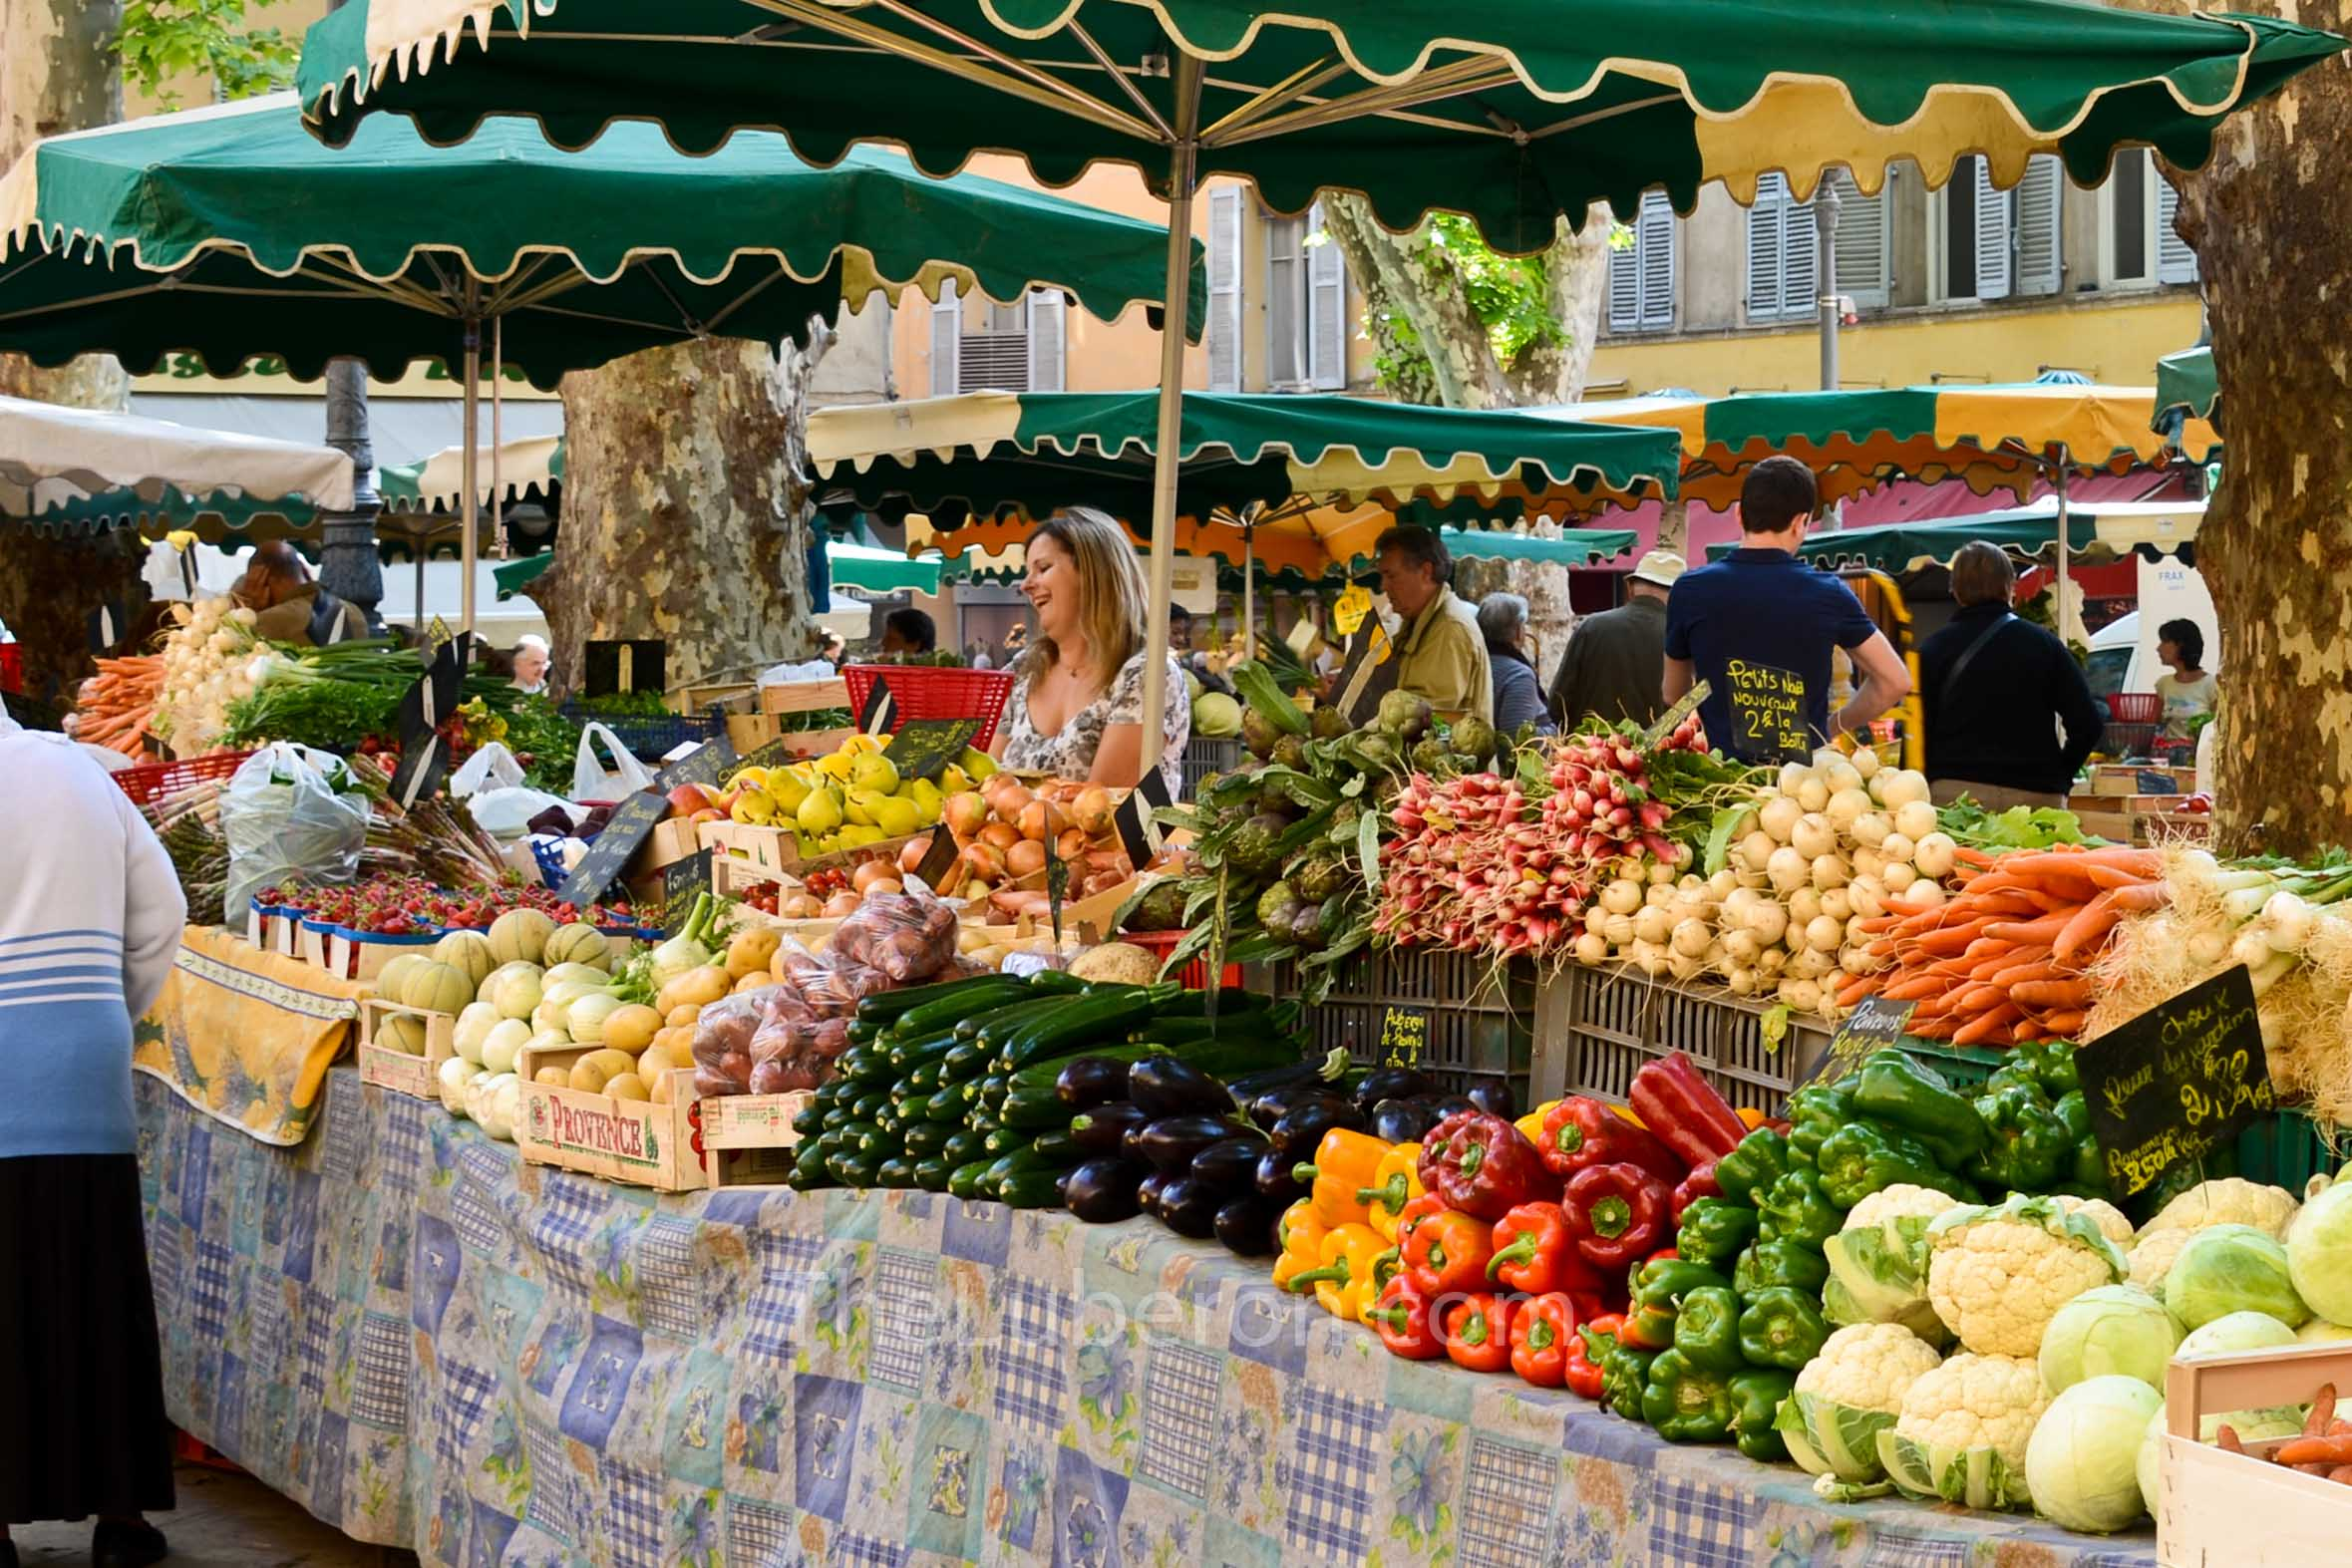 Market in town square